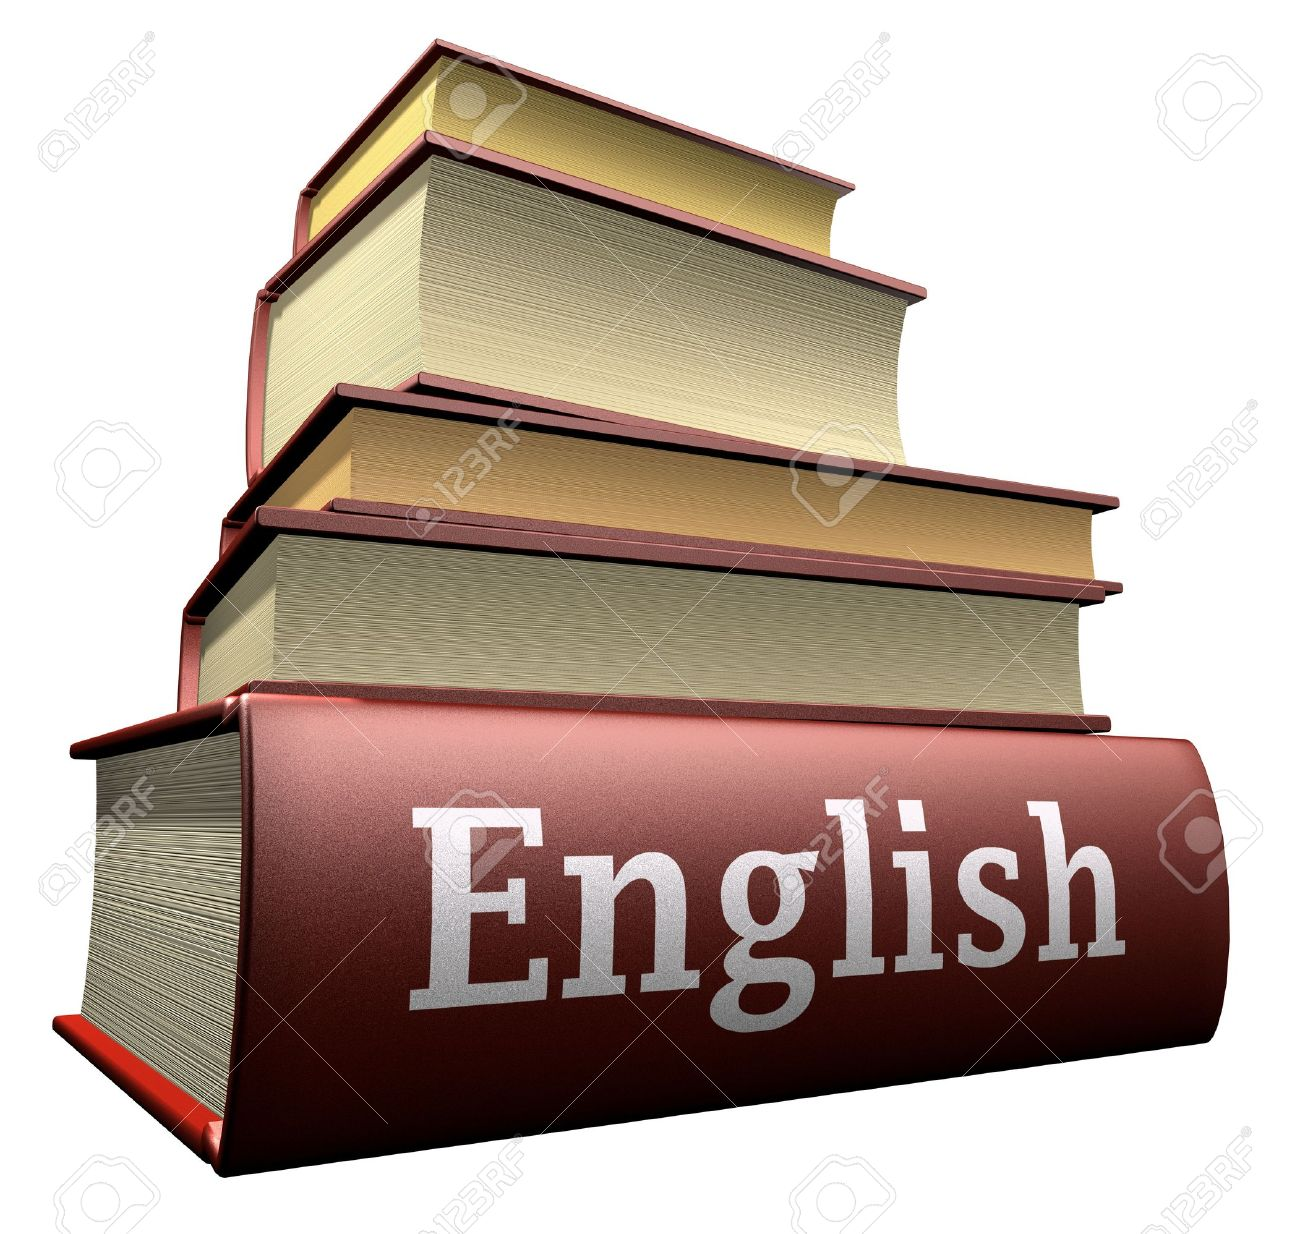 Education Books - English Stock Photo, Picture And Royalty Free ...